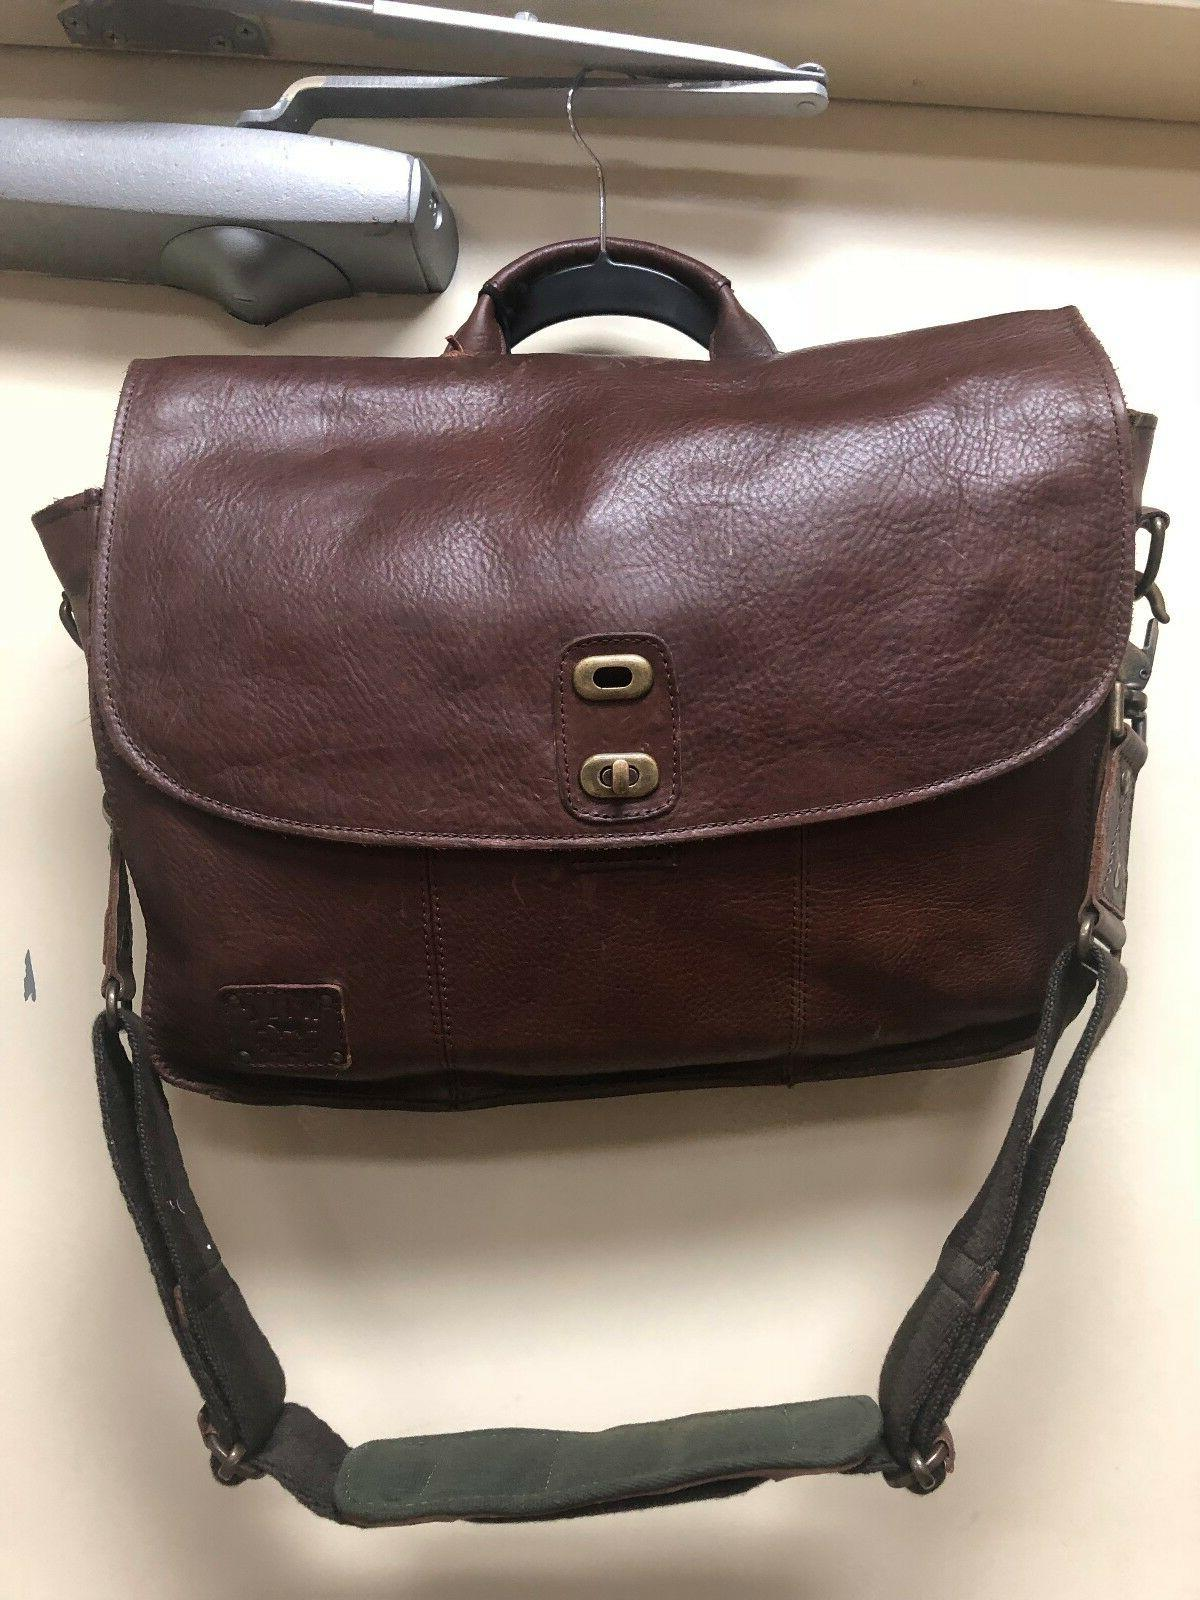 kent messenger bag travel pillow brown leather